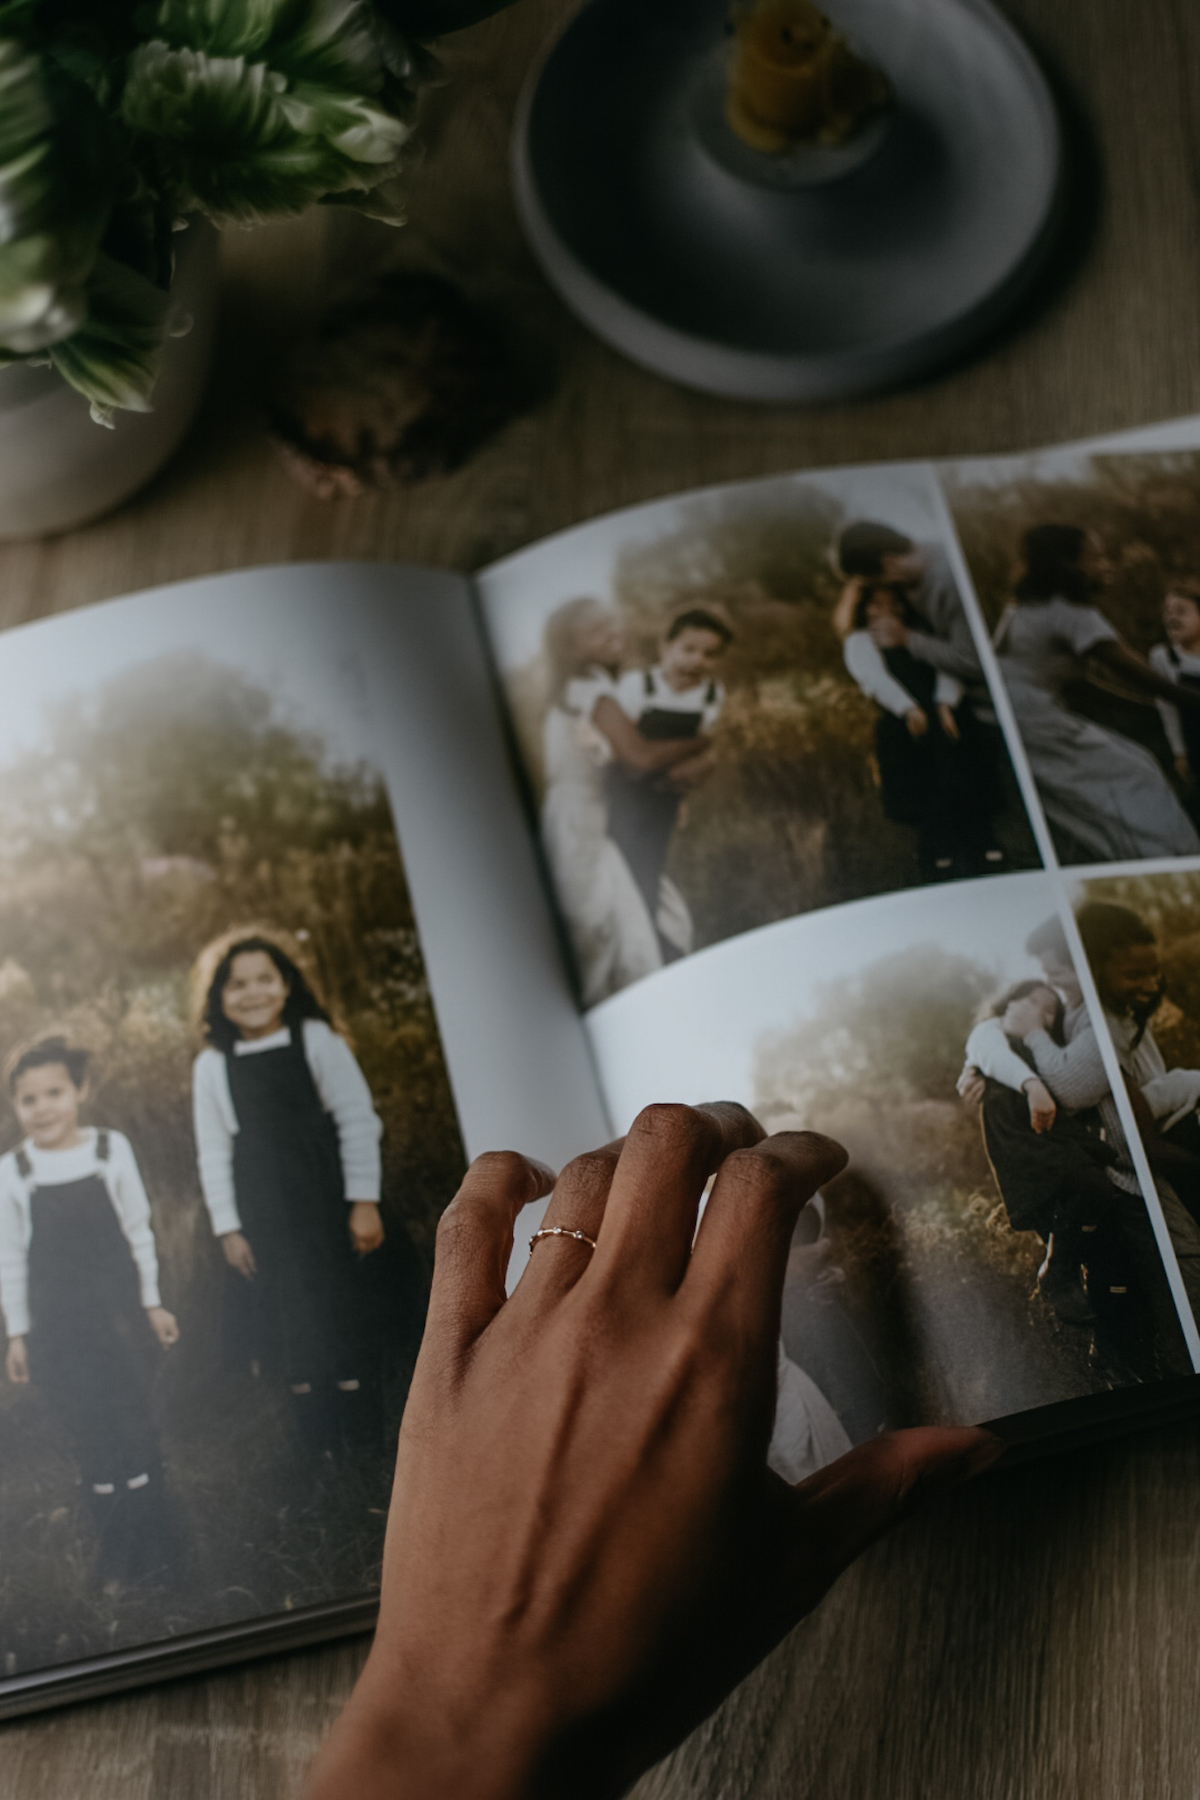 Mother's hand flipping through album filled with photos of her children